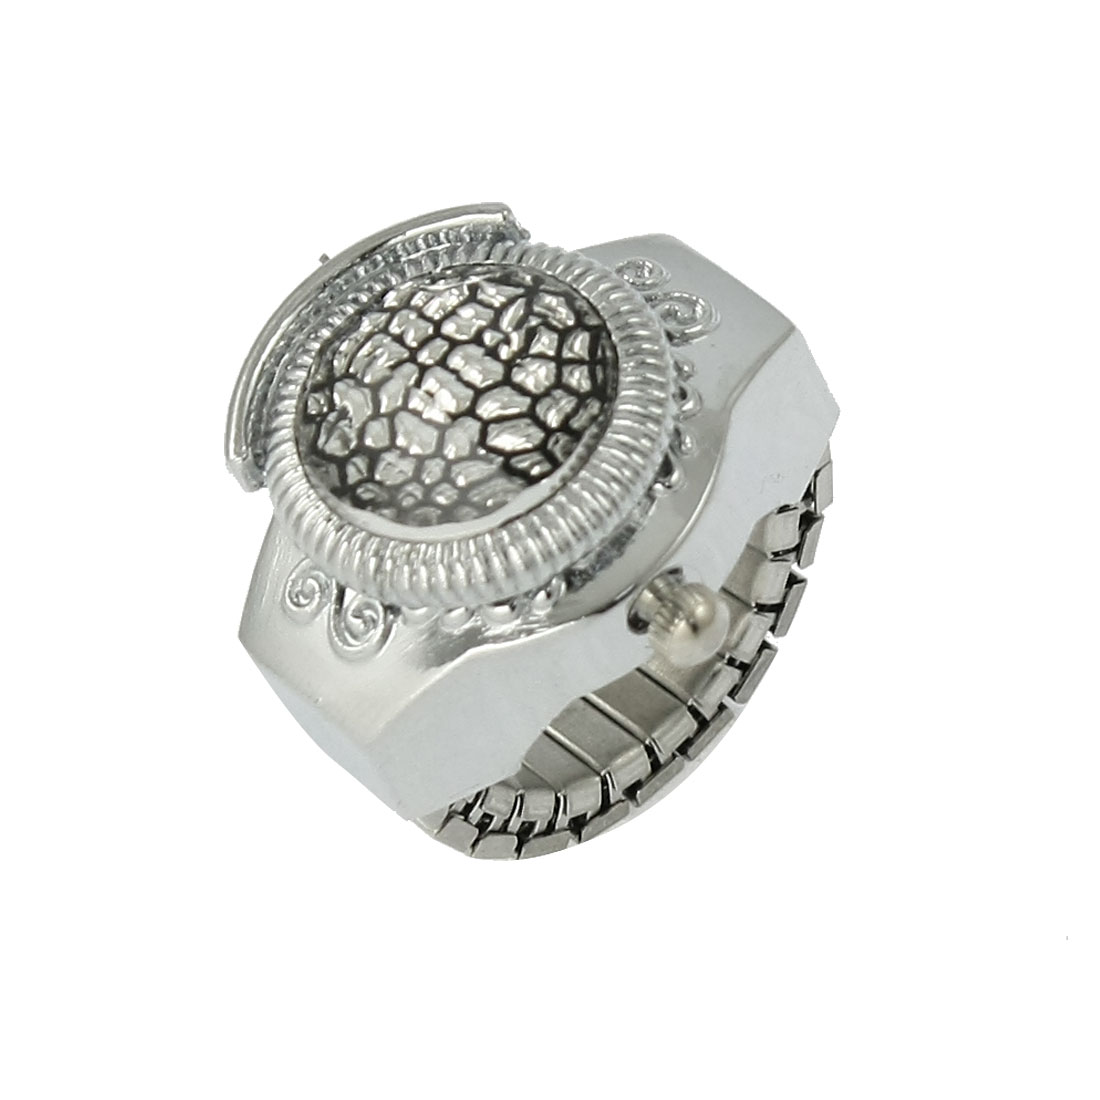 US 4 Plastic Crystal Decor Cover Finger Ring Watch Silver Tone for Ladies